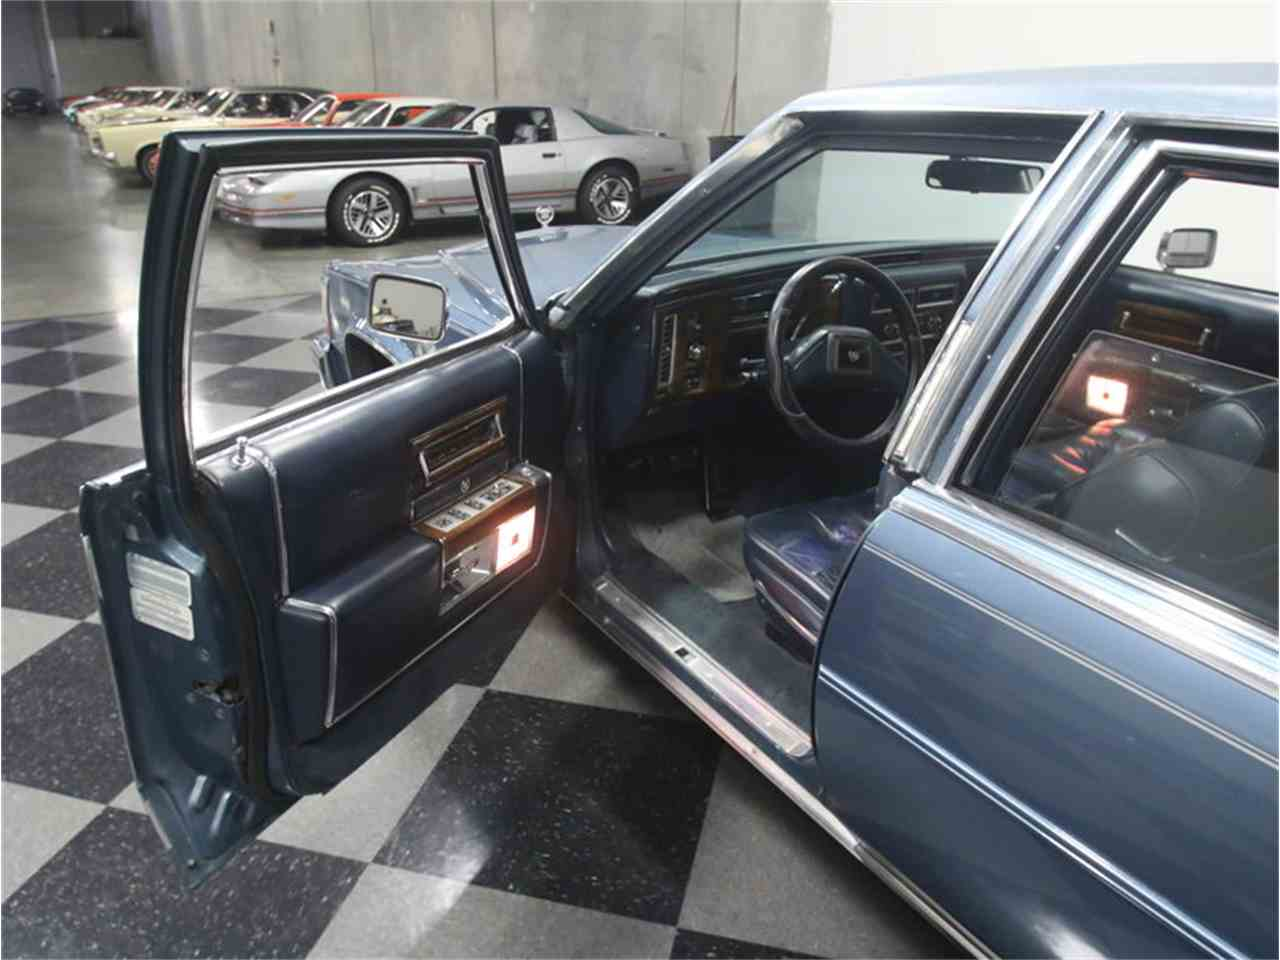 Large Picture of 1986 Fleetwood Brougham located in Georgia - $8,995.00 Offered by Streetside Classics - Atlanta - LHHW